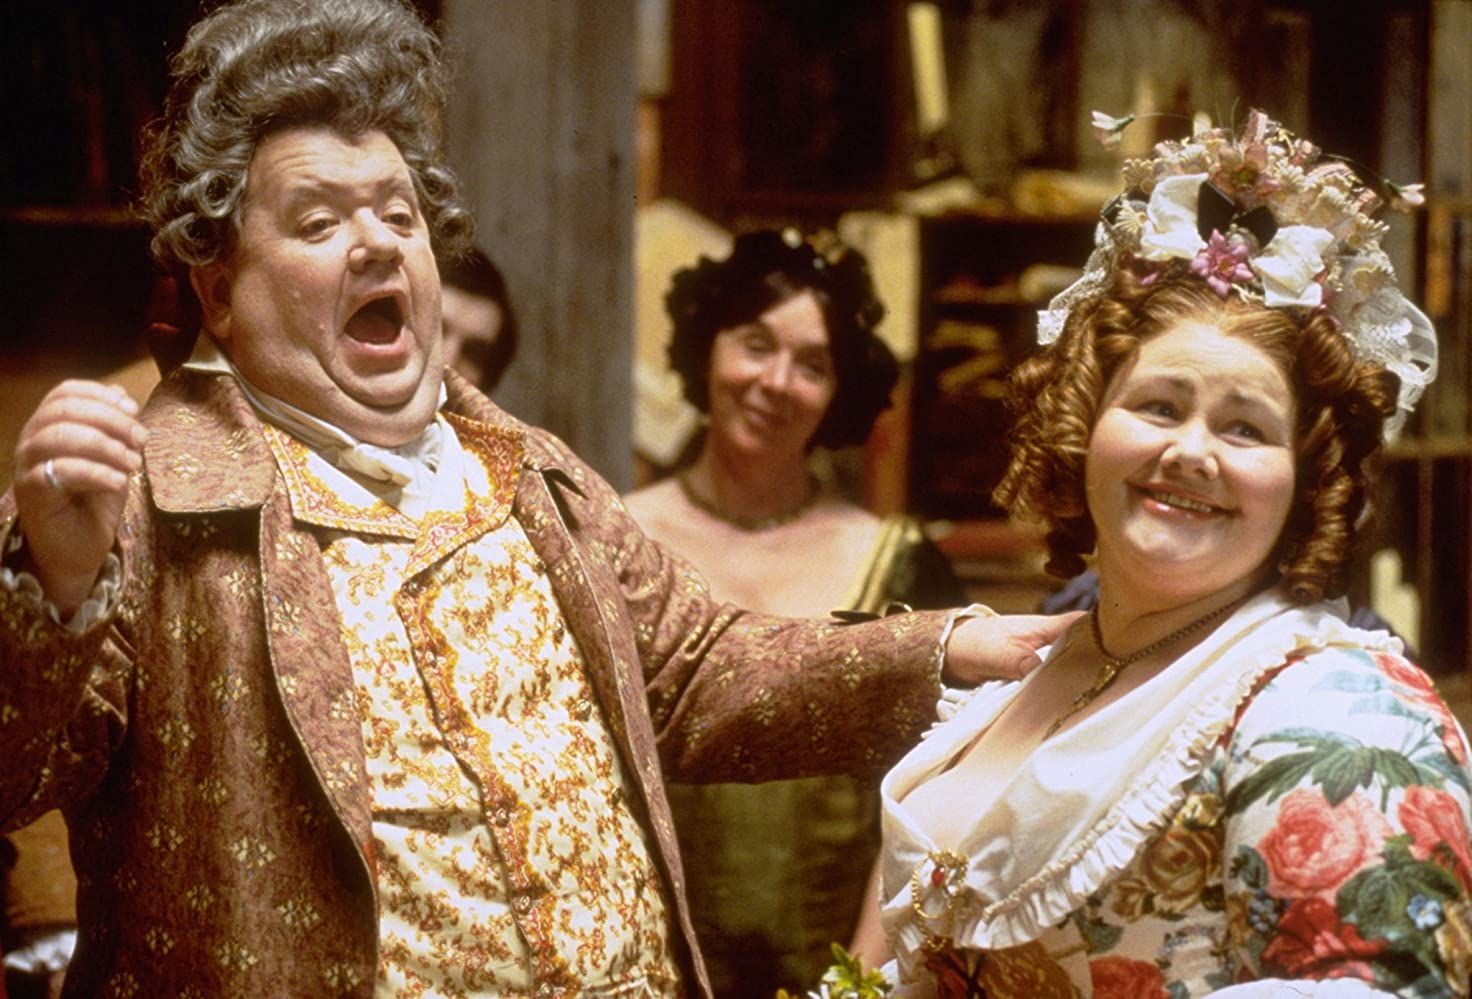 Annette Badland and Ian McNeice in A Christmas Carol (1999)